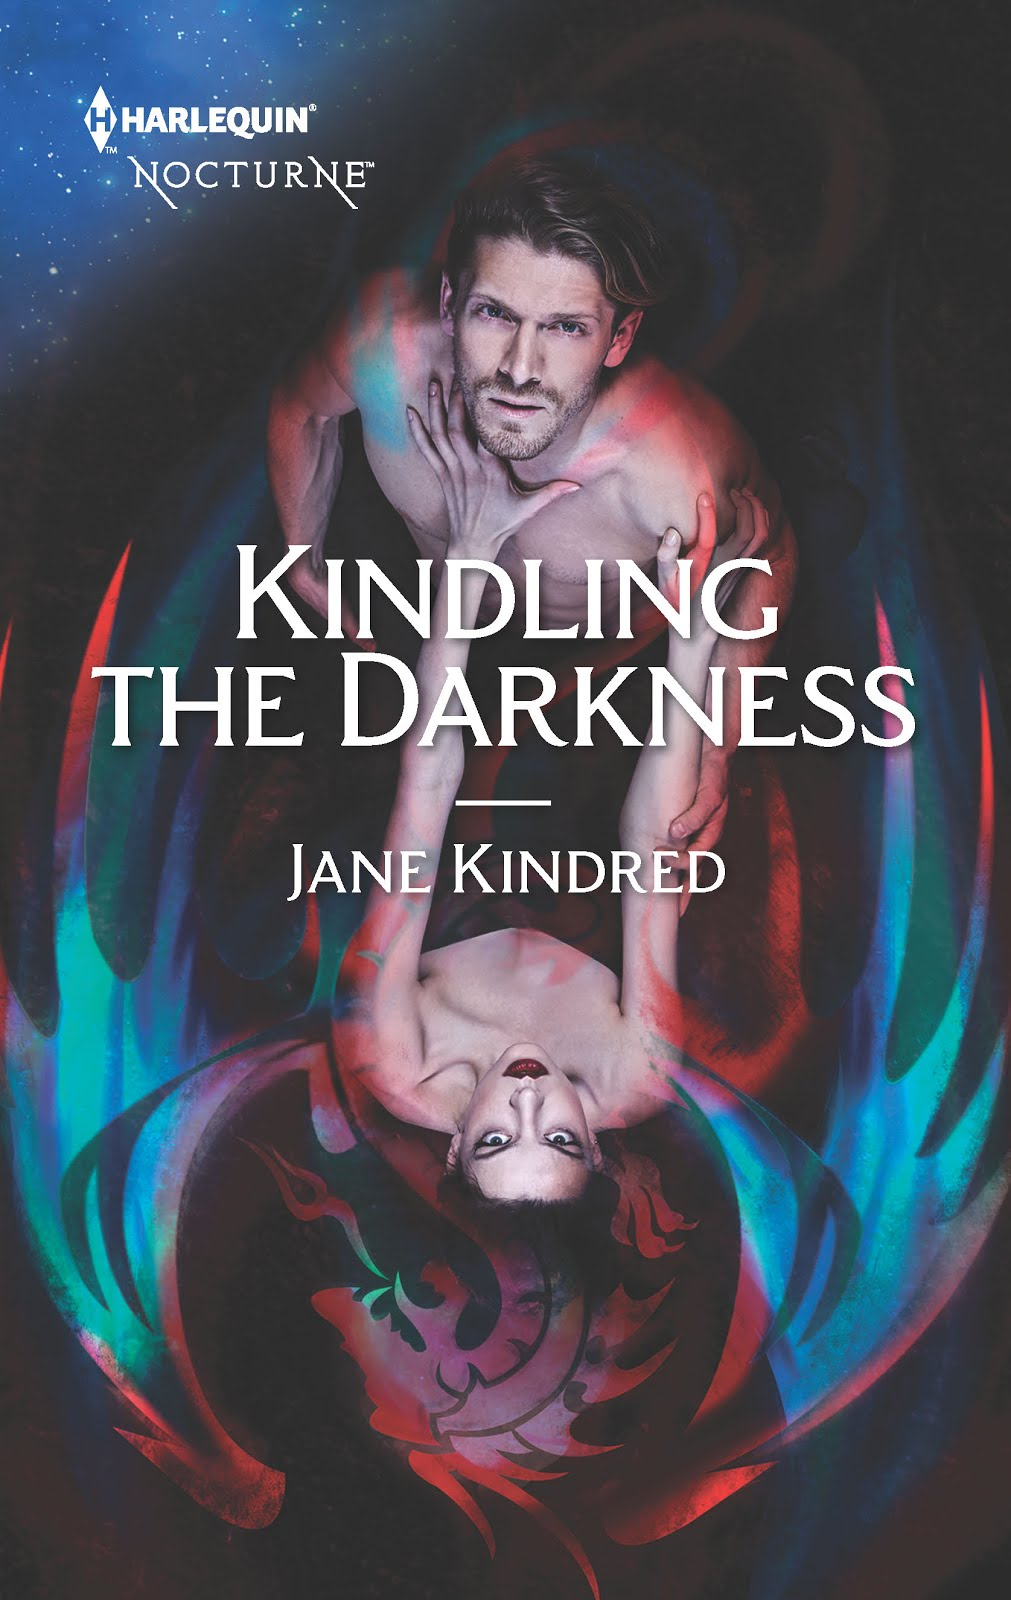 Jane Kindred